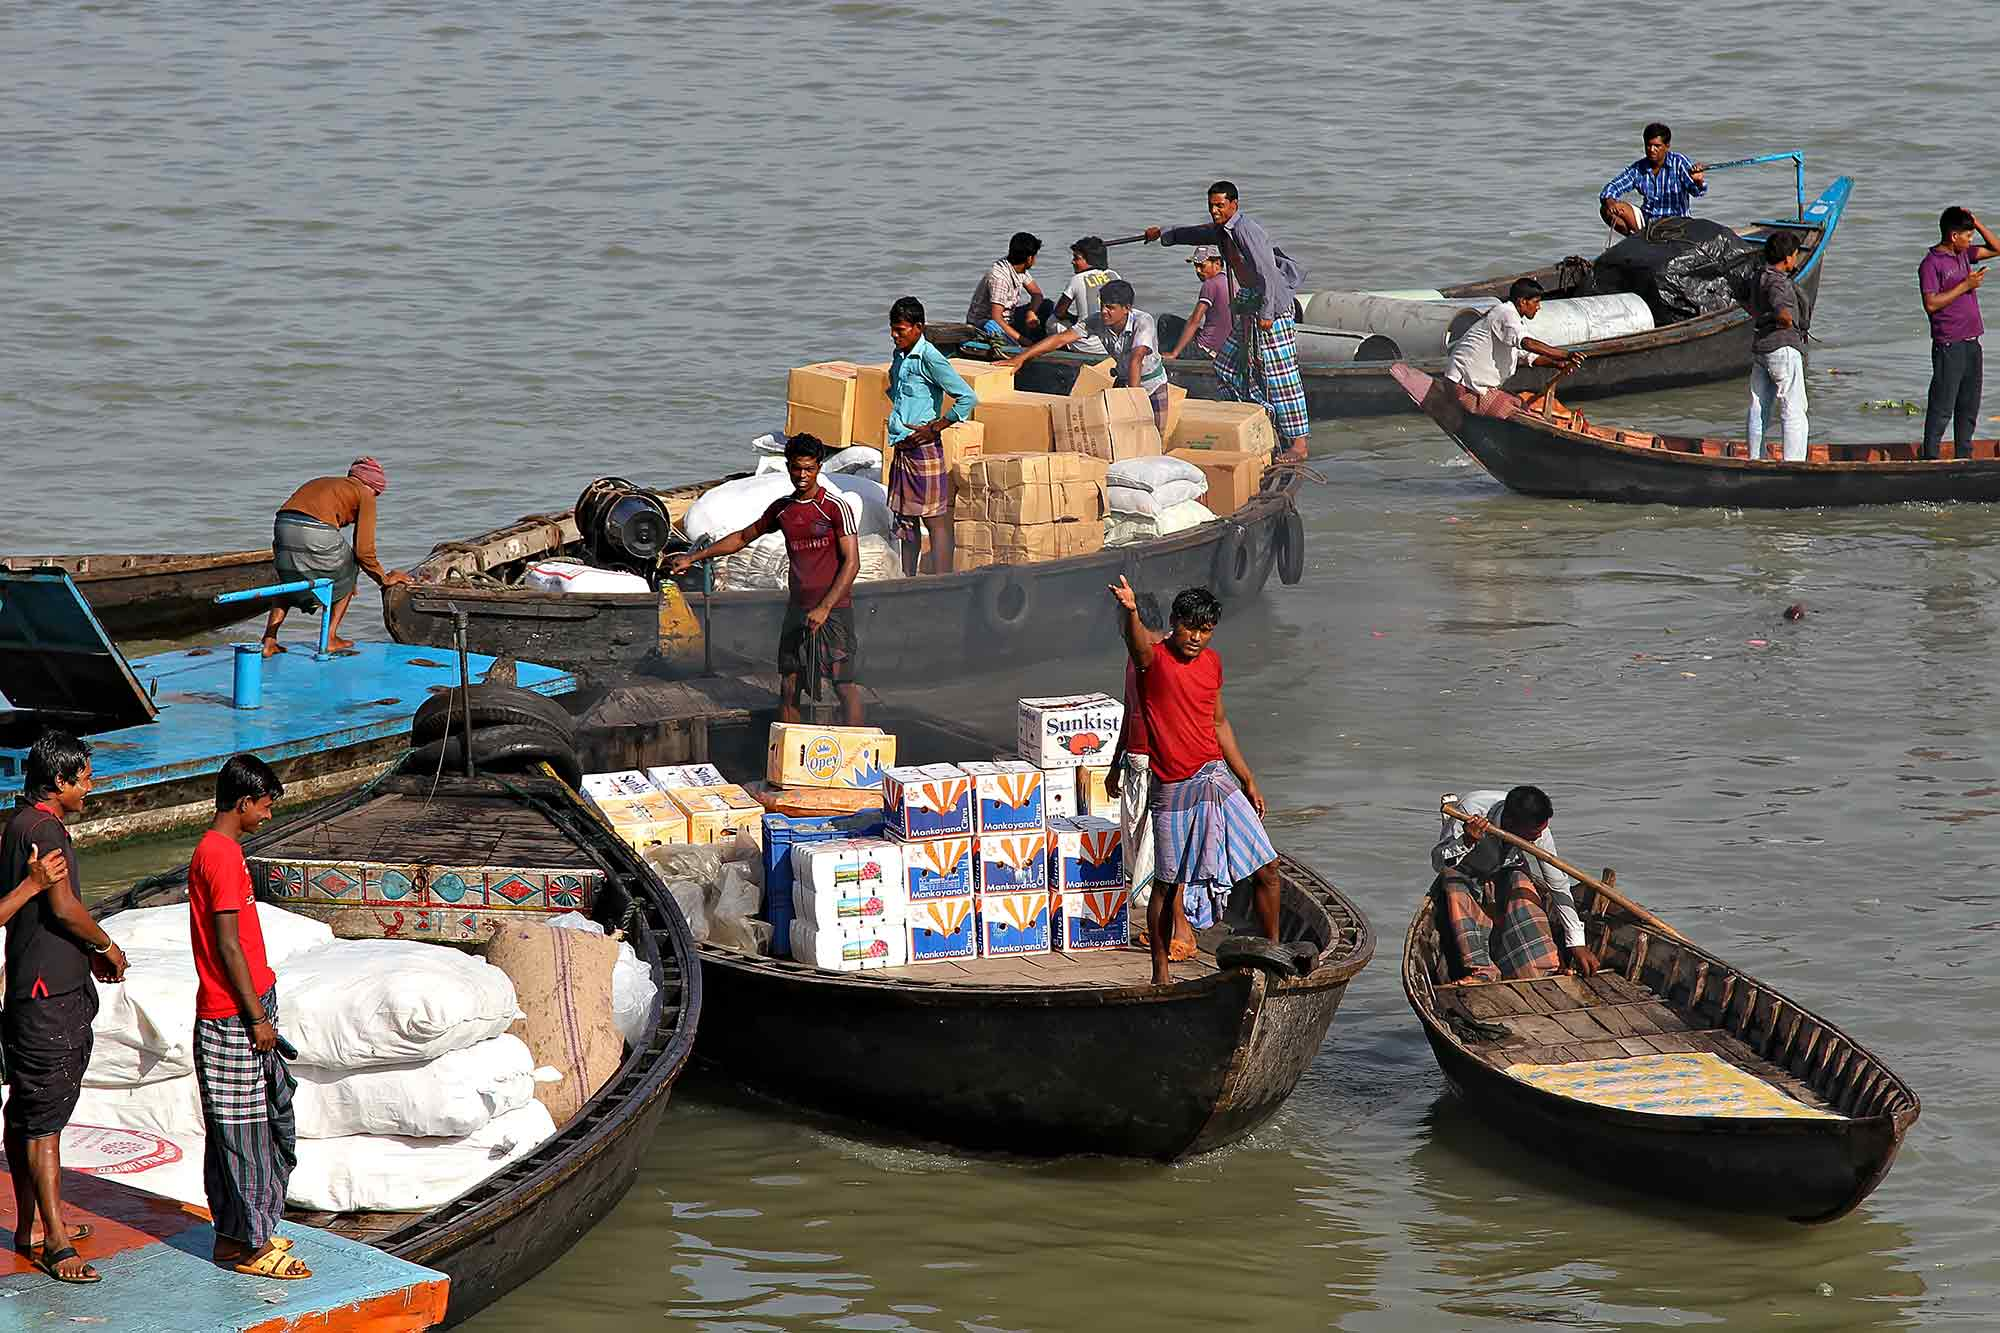 Getting ready to load a launch in Sadarghat port, Dhaka. © Ulli Maier & Nisa Maier